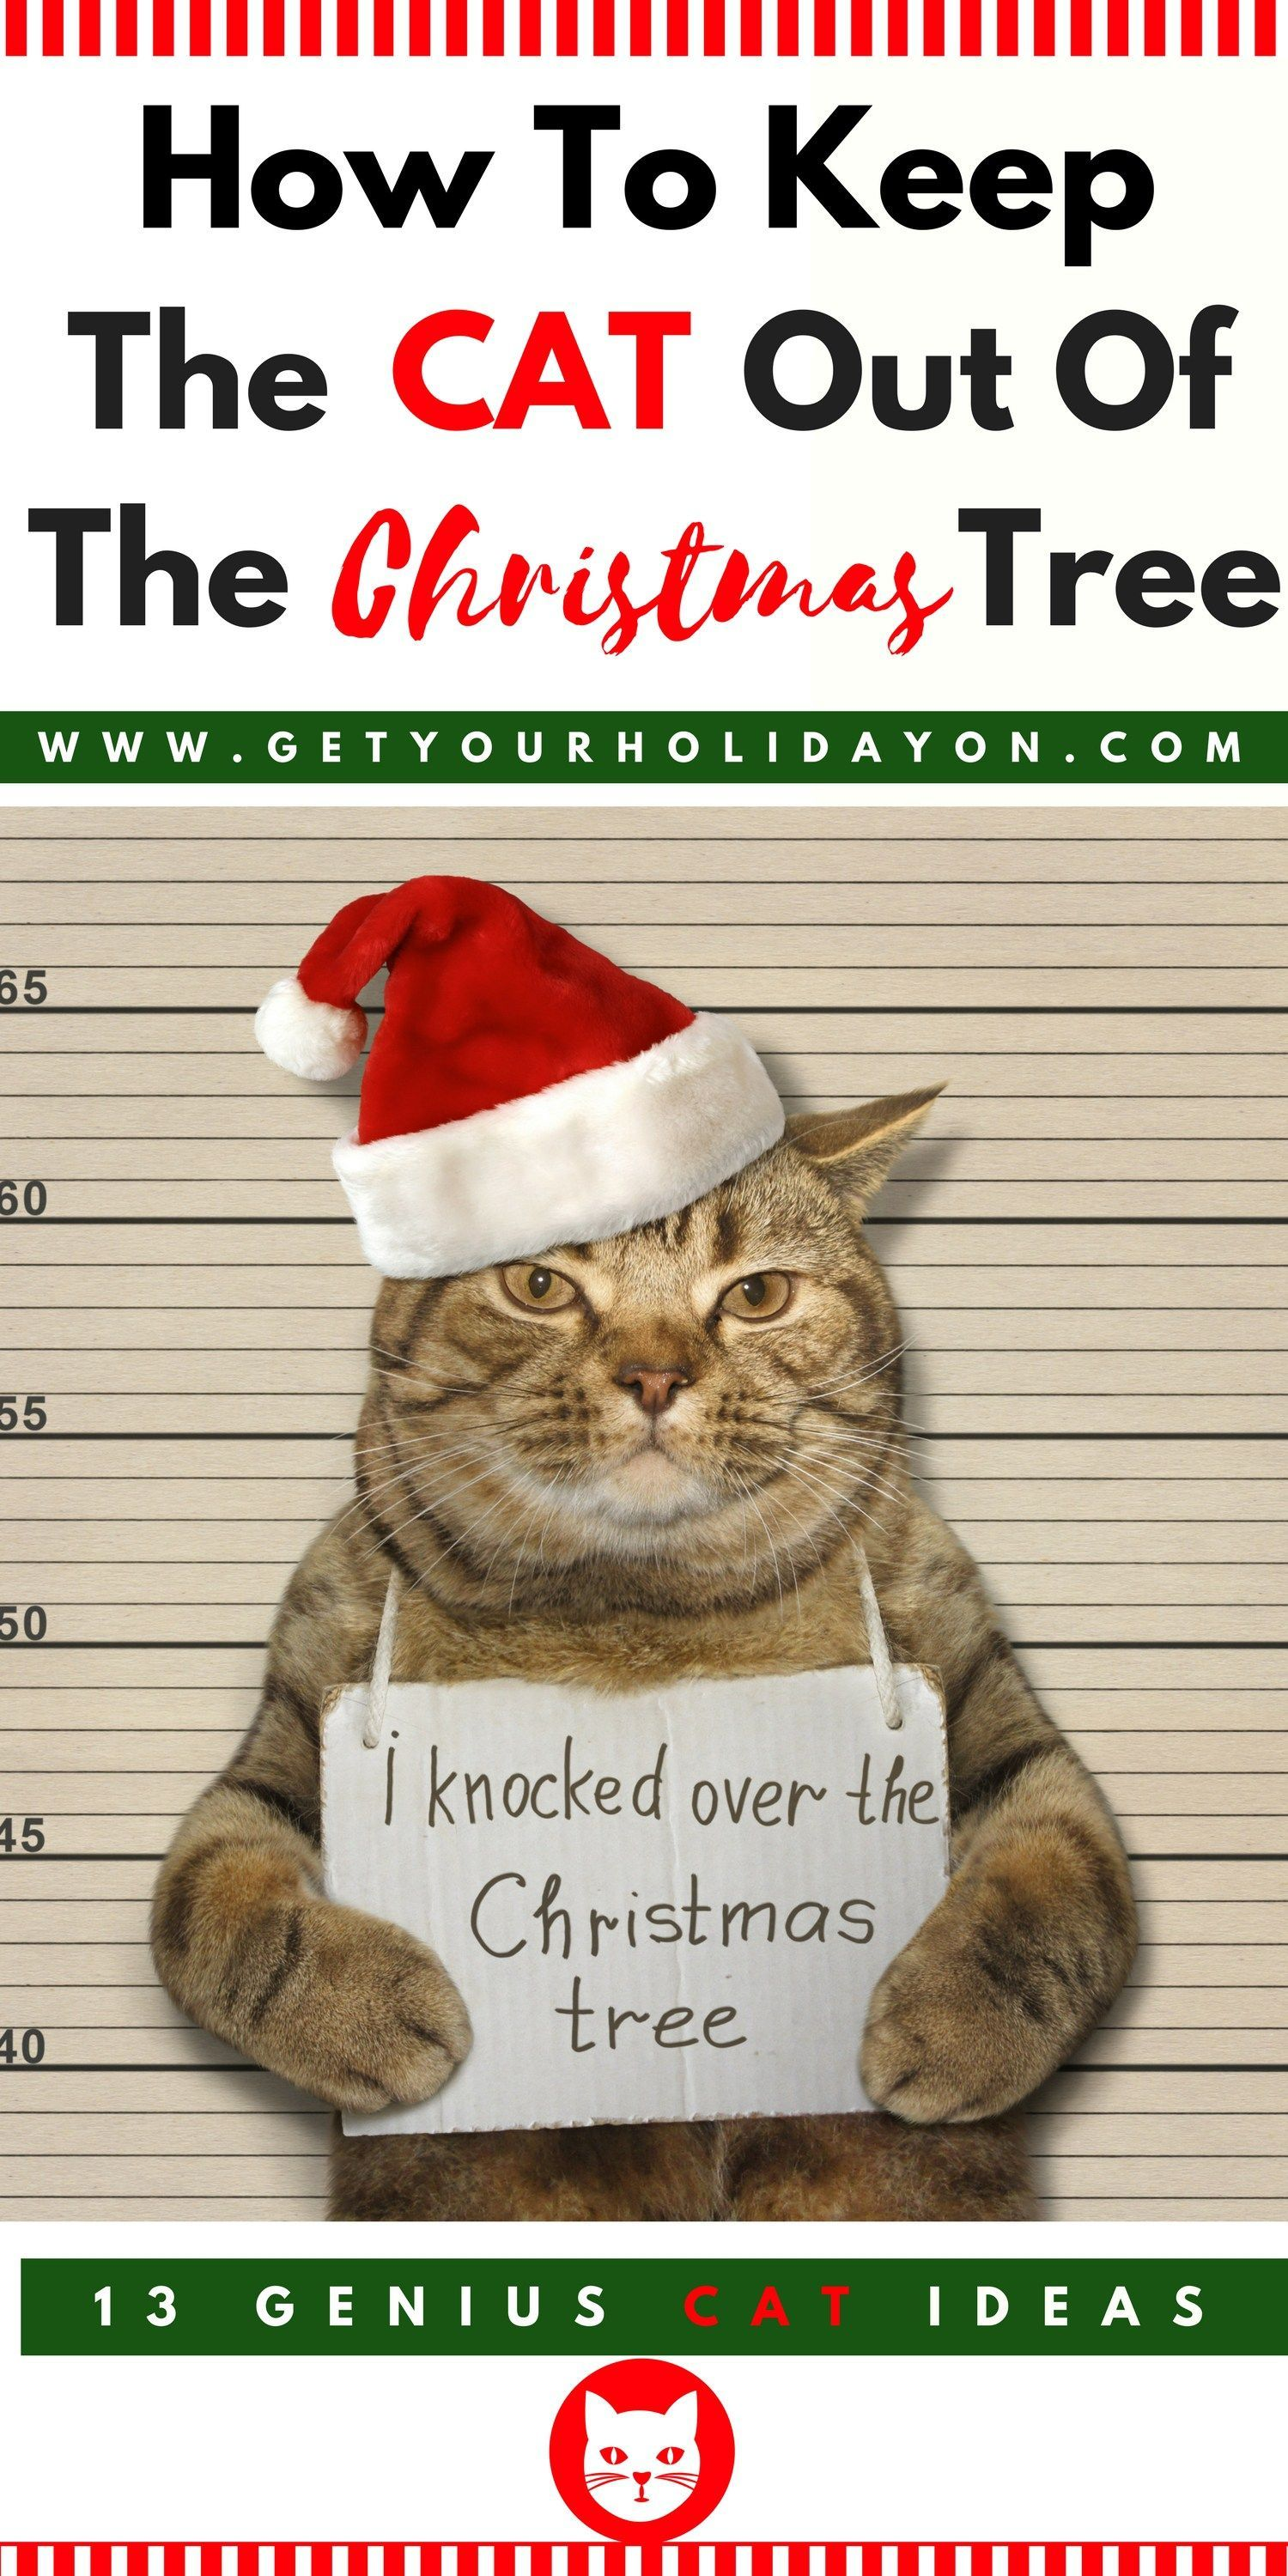 How To Keep The Cat Out of The Christmas Tree | 13 Ways #cat ...